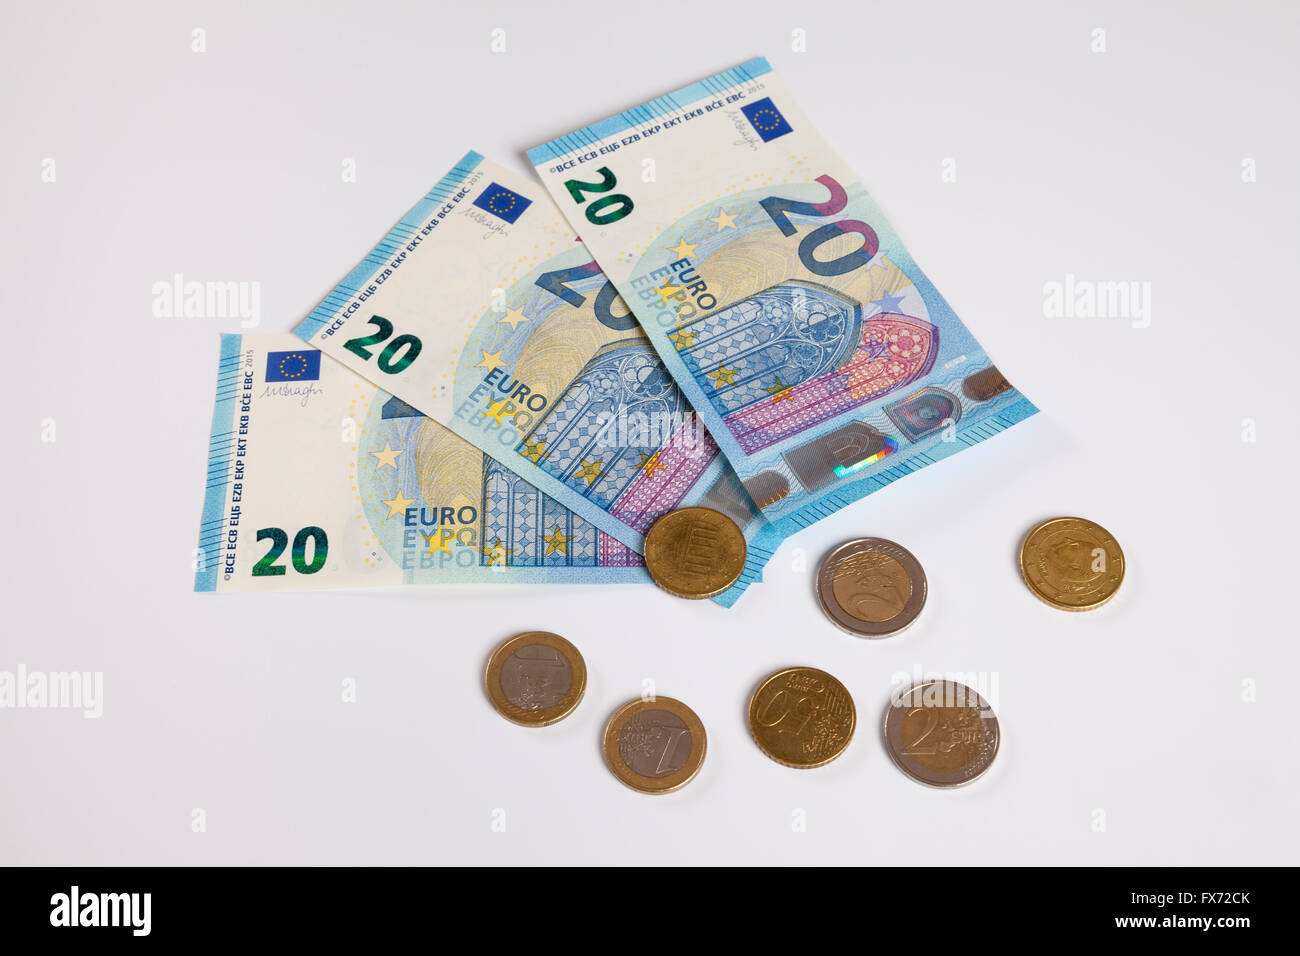 Bank notes, twenty euros, publication date 25/11/2015, coins - Stock Image